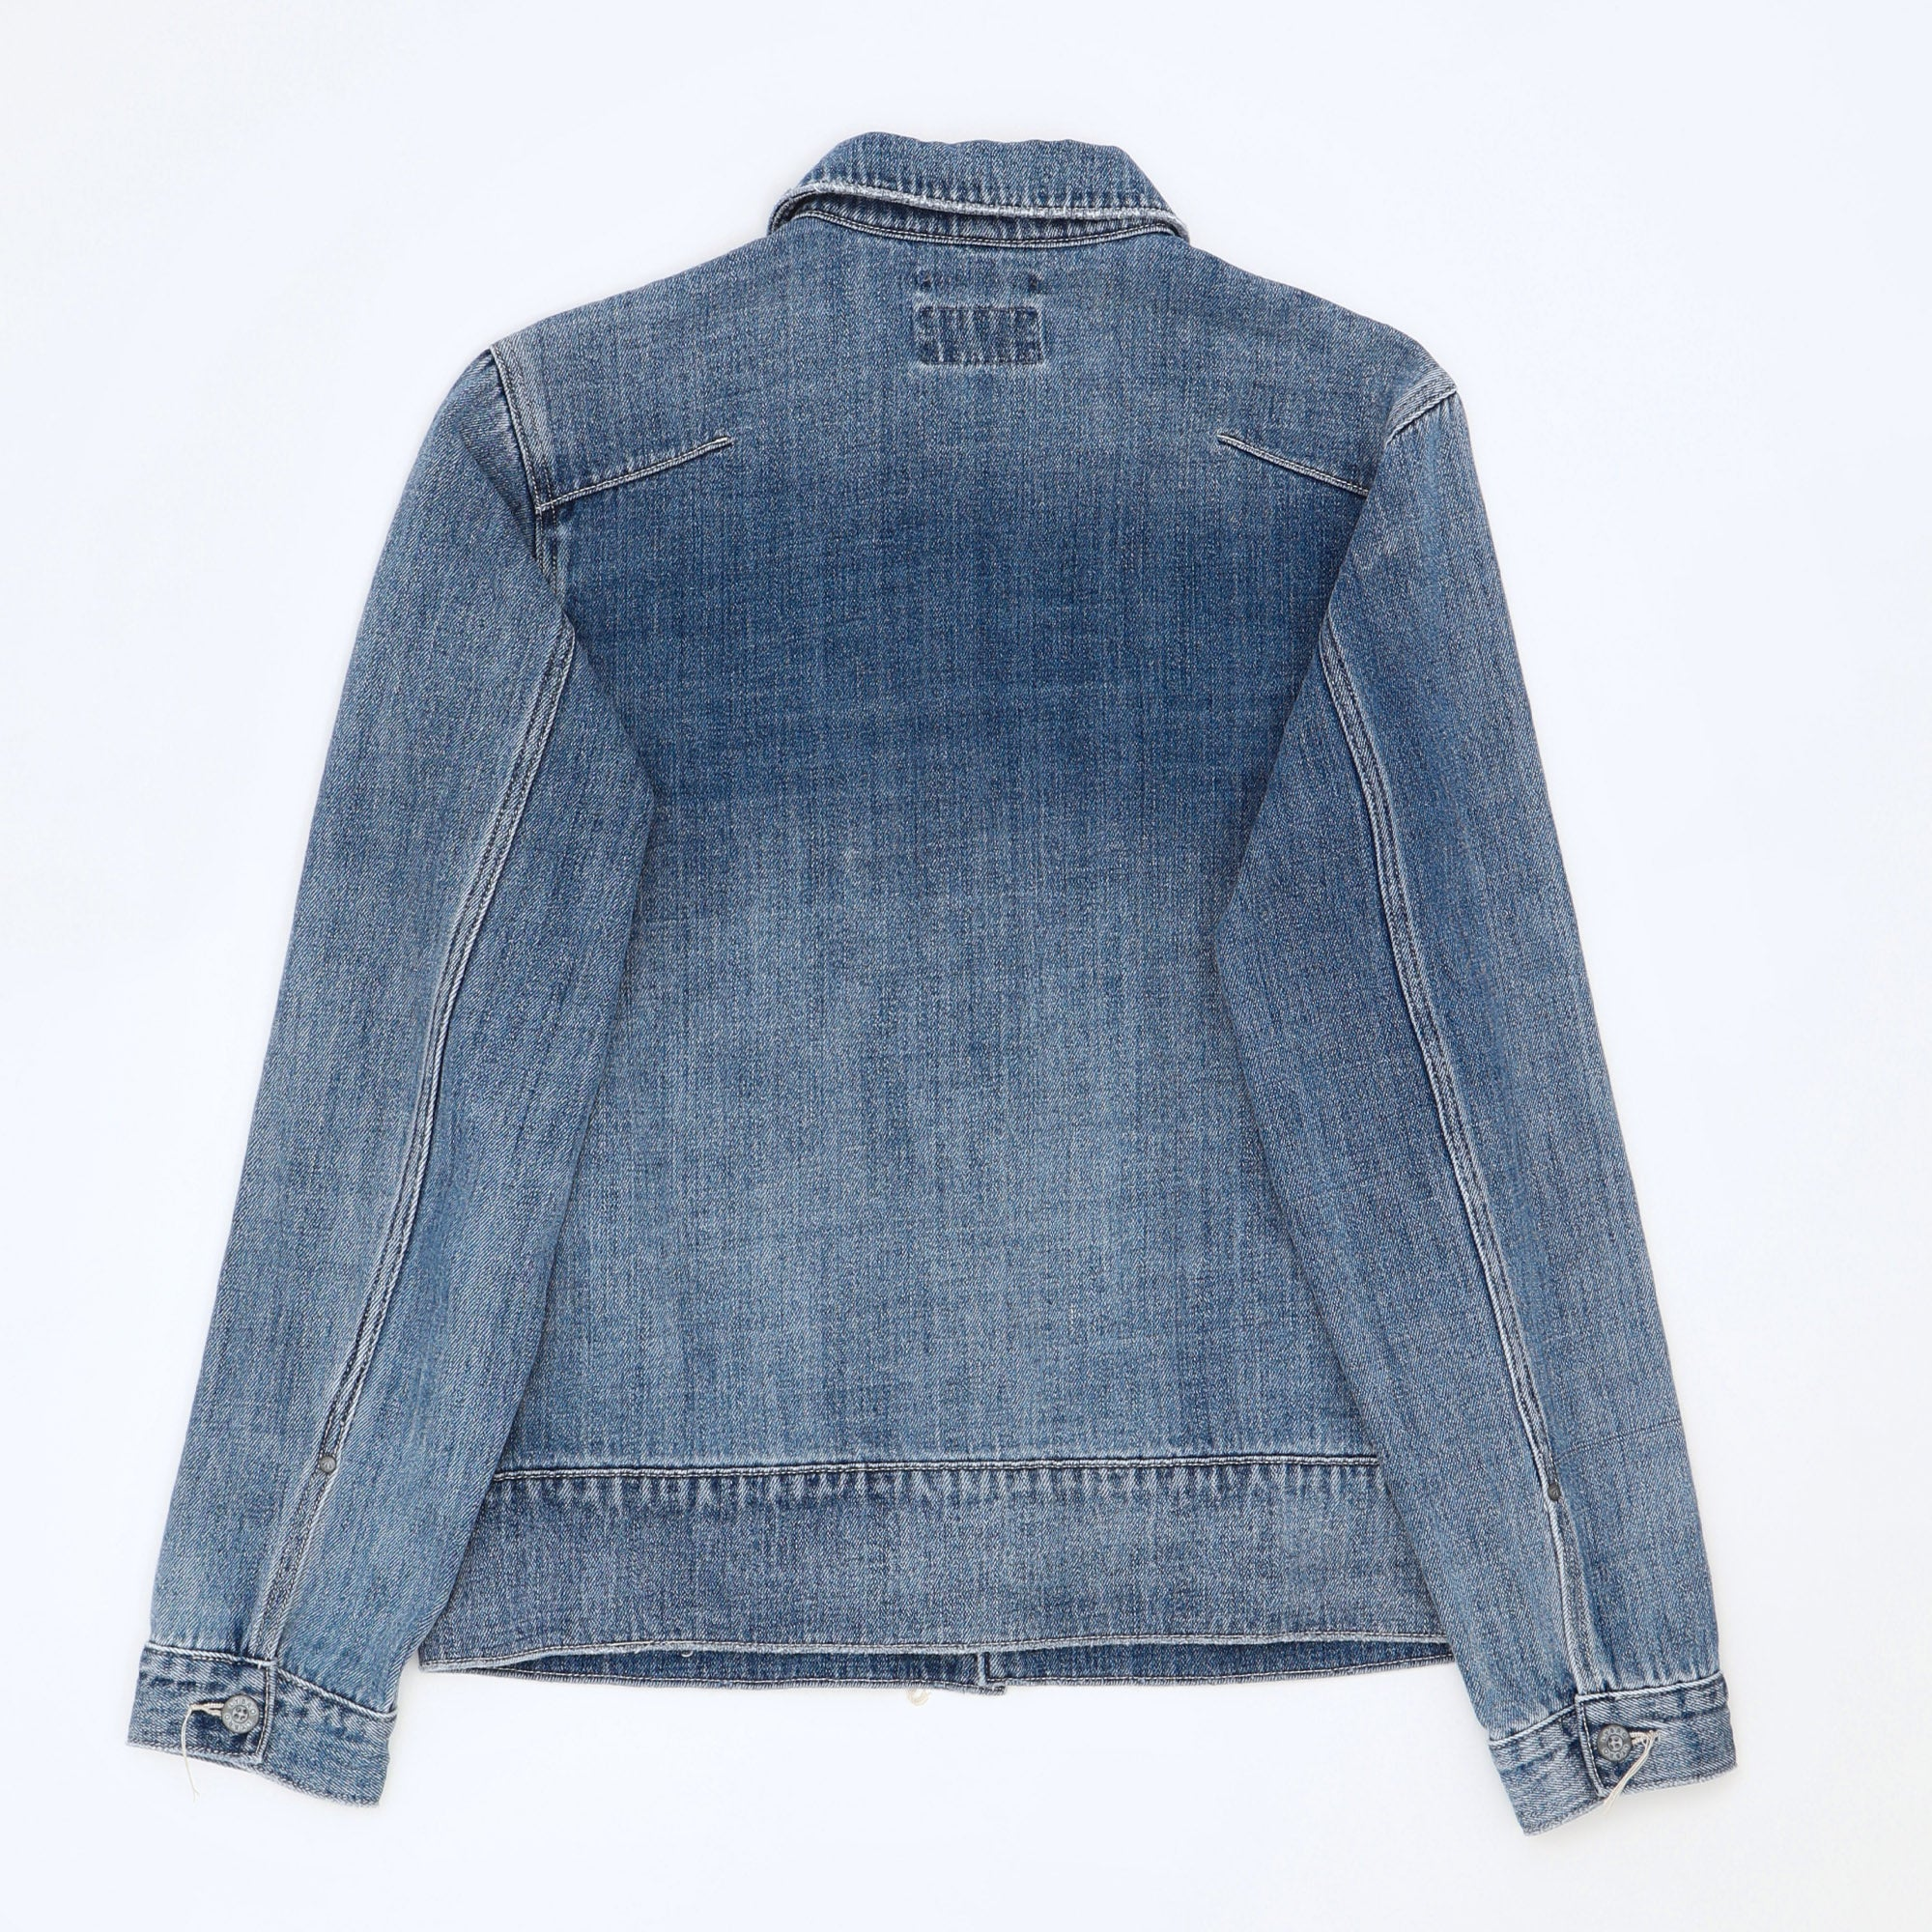 Lybro Denim Hip Jacket